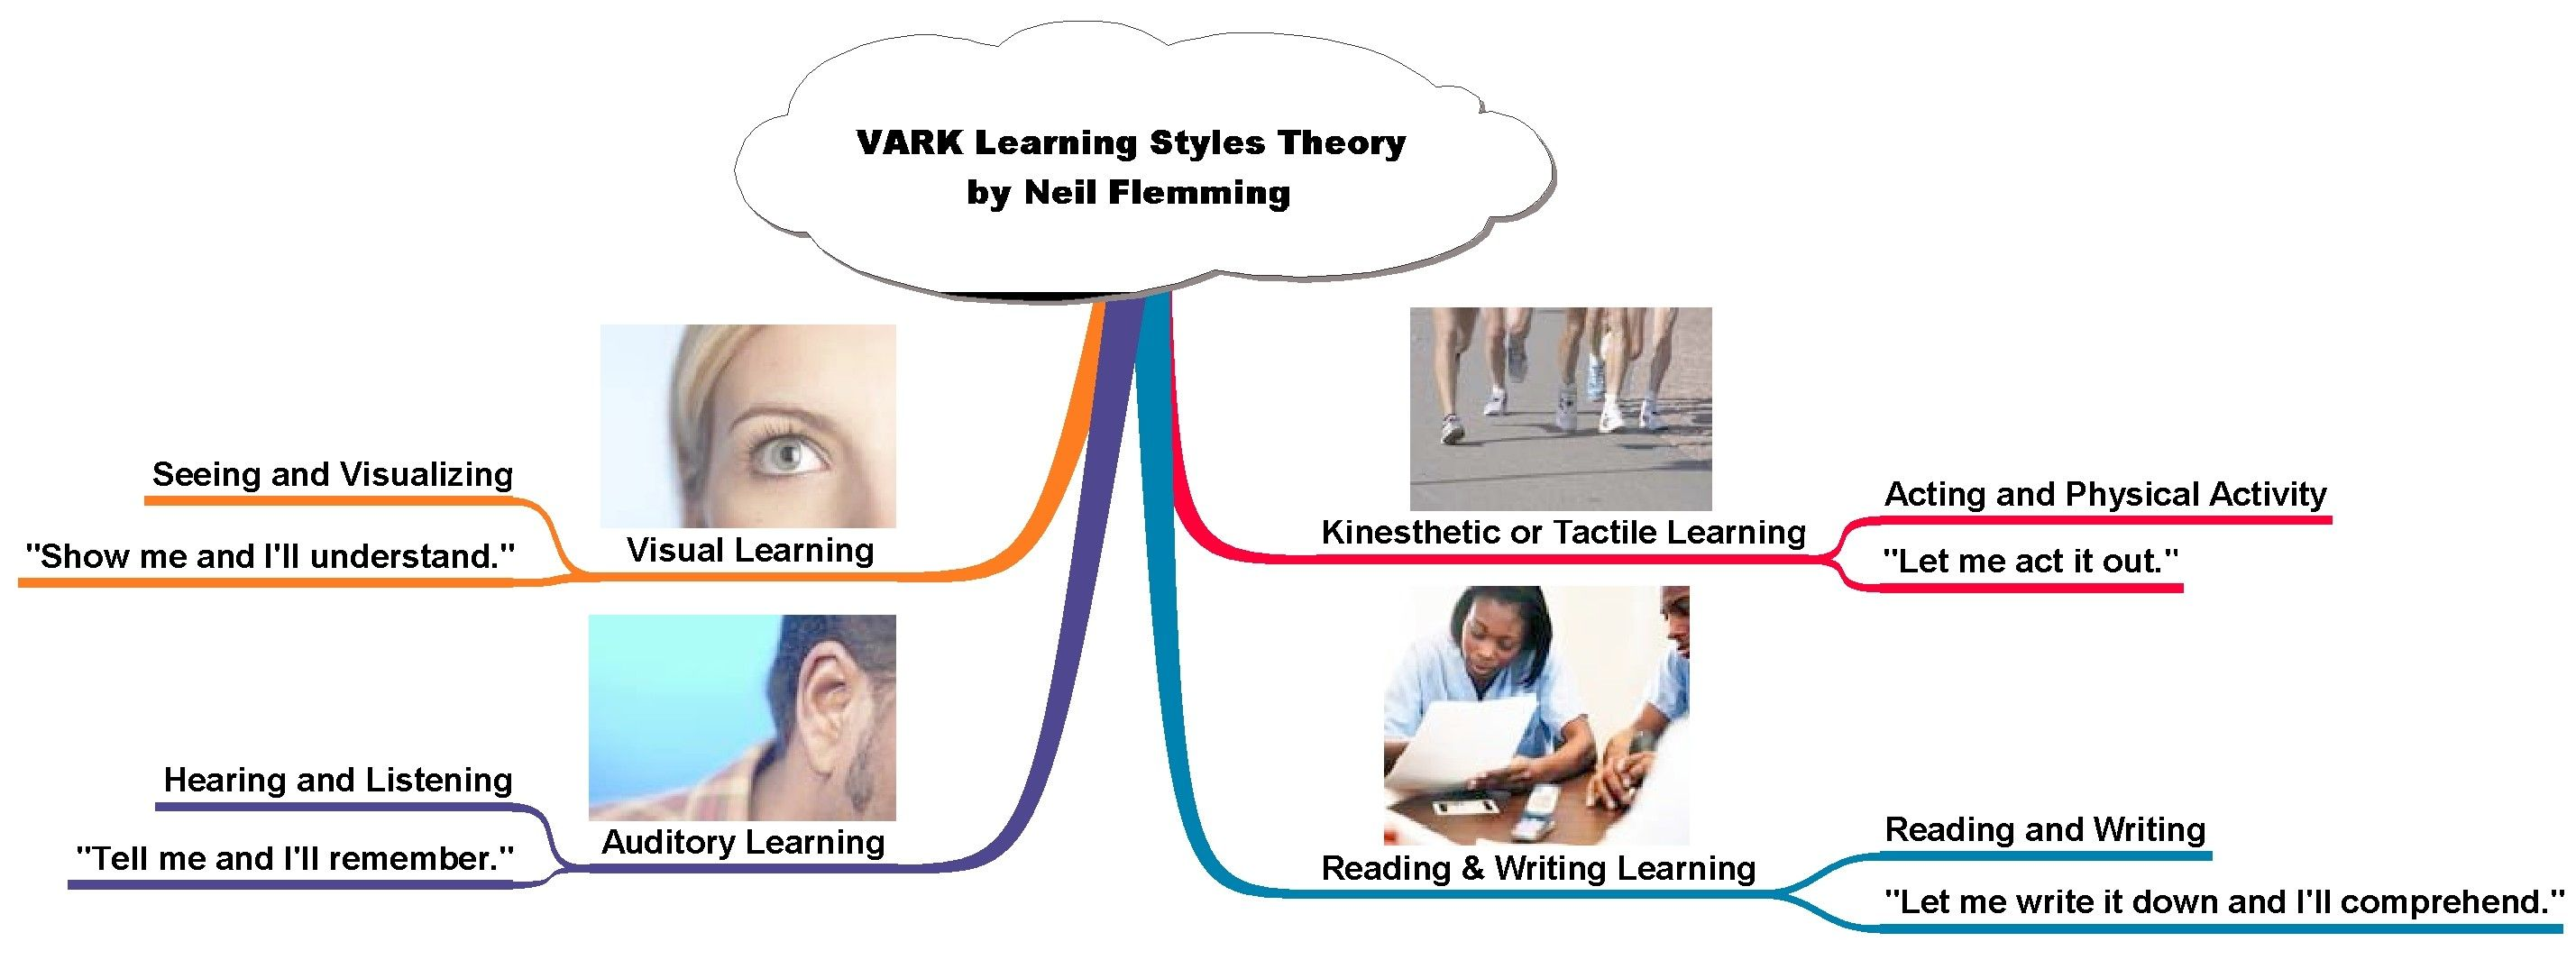 Vark learning styles theory learning pinterest learning styles vark learning styles theory ccuart Gallery